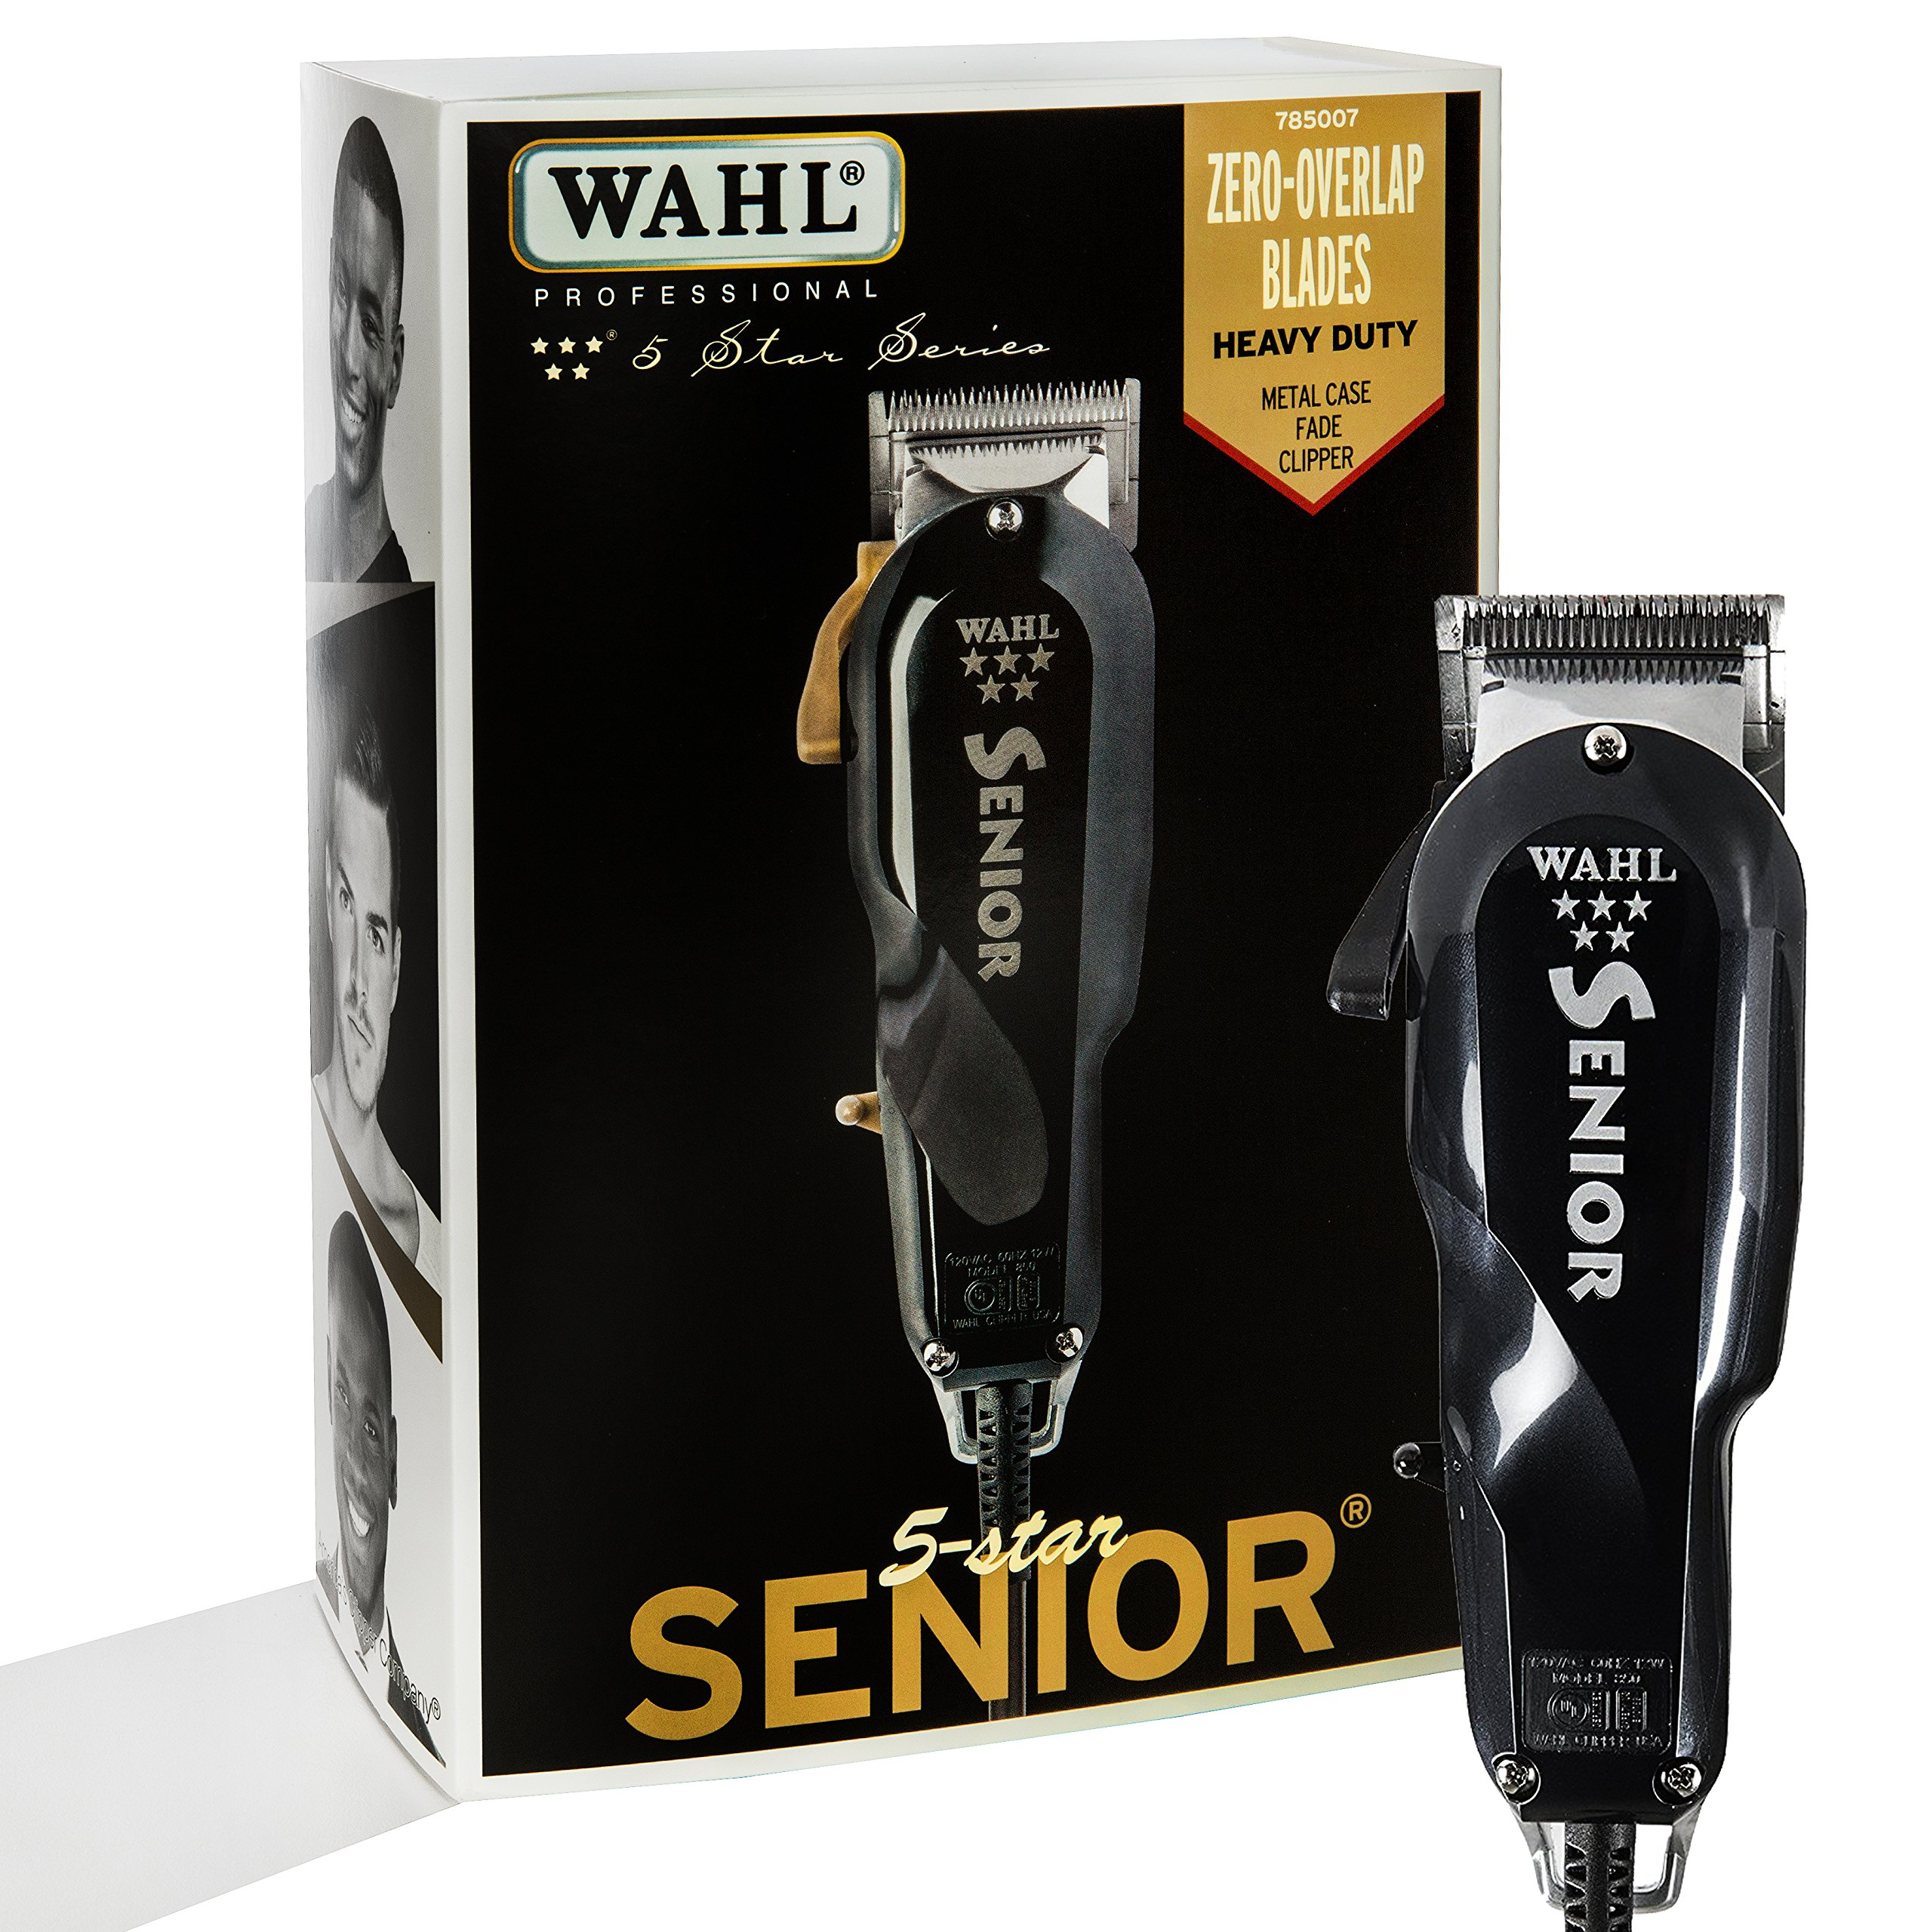 Wahl Professional 5 Star Series Senior Clipper #8545 – Great for Professional Stylists and Barbers – V9000 Electromagnetic Motor – Black -Aluminum metal bottom housing